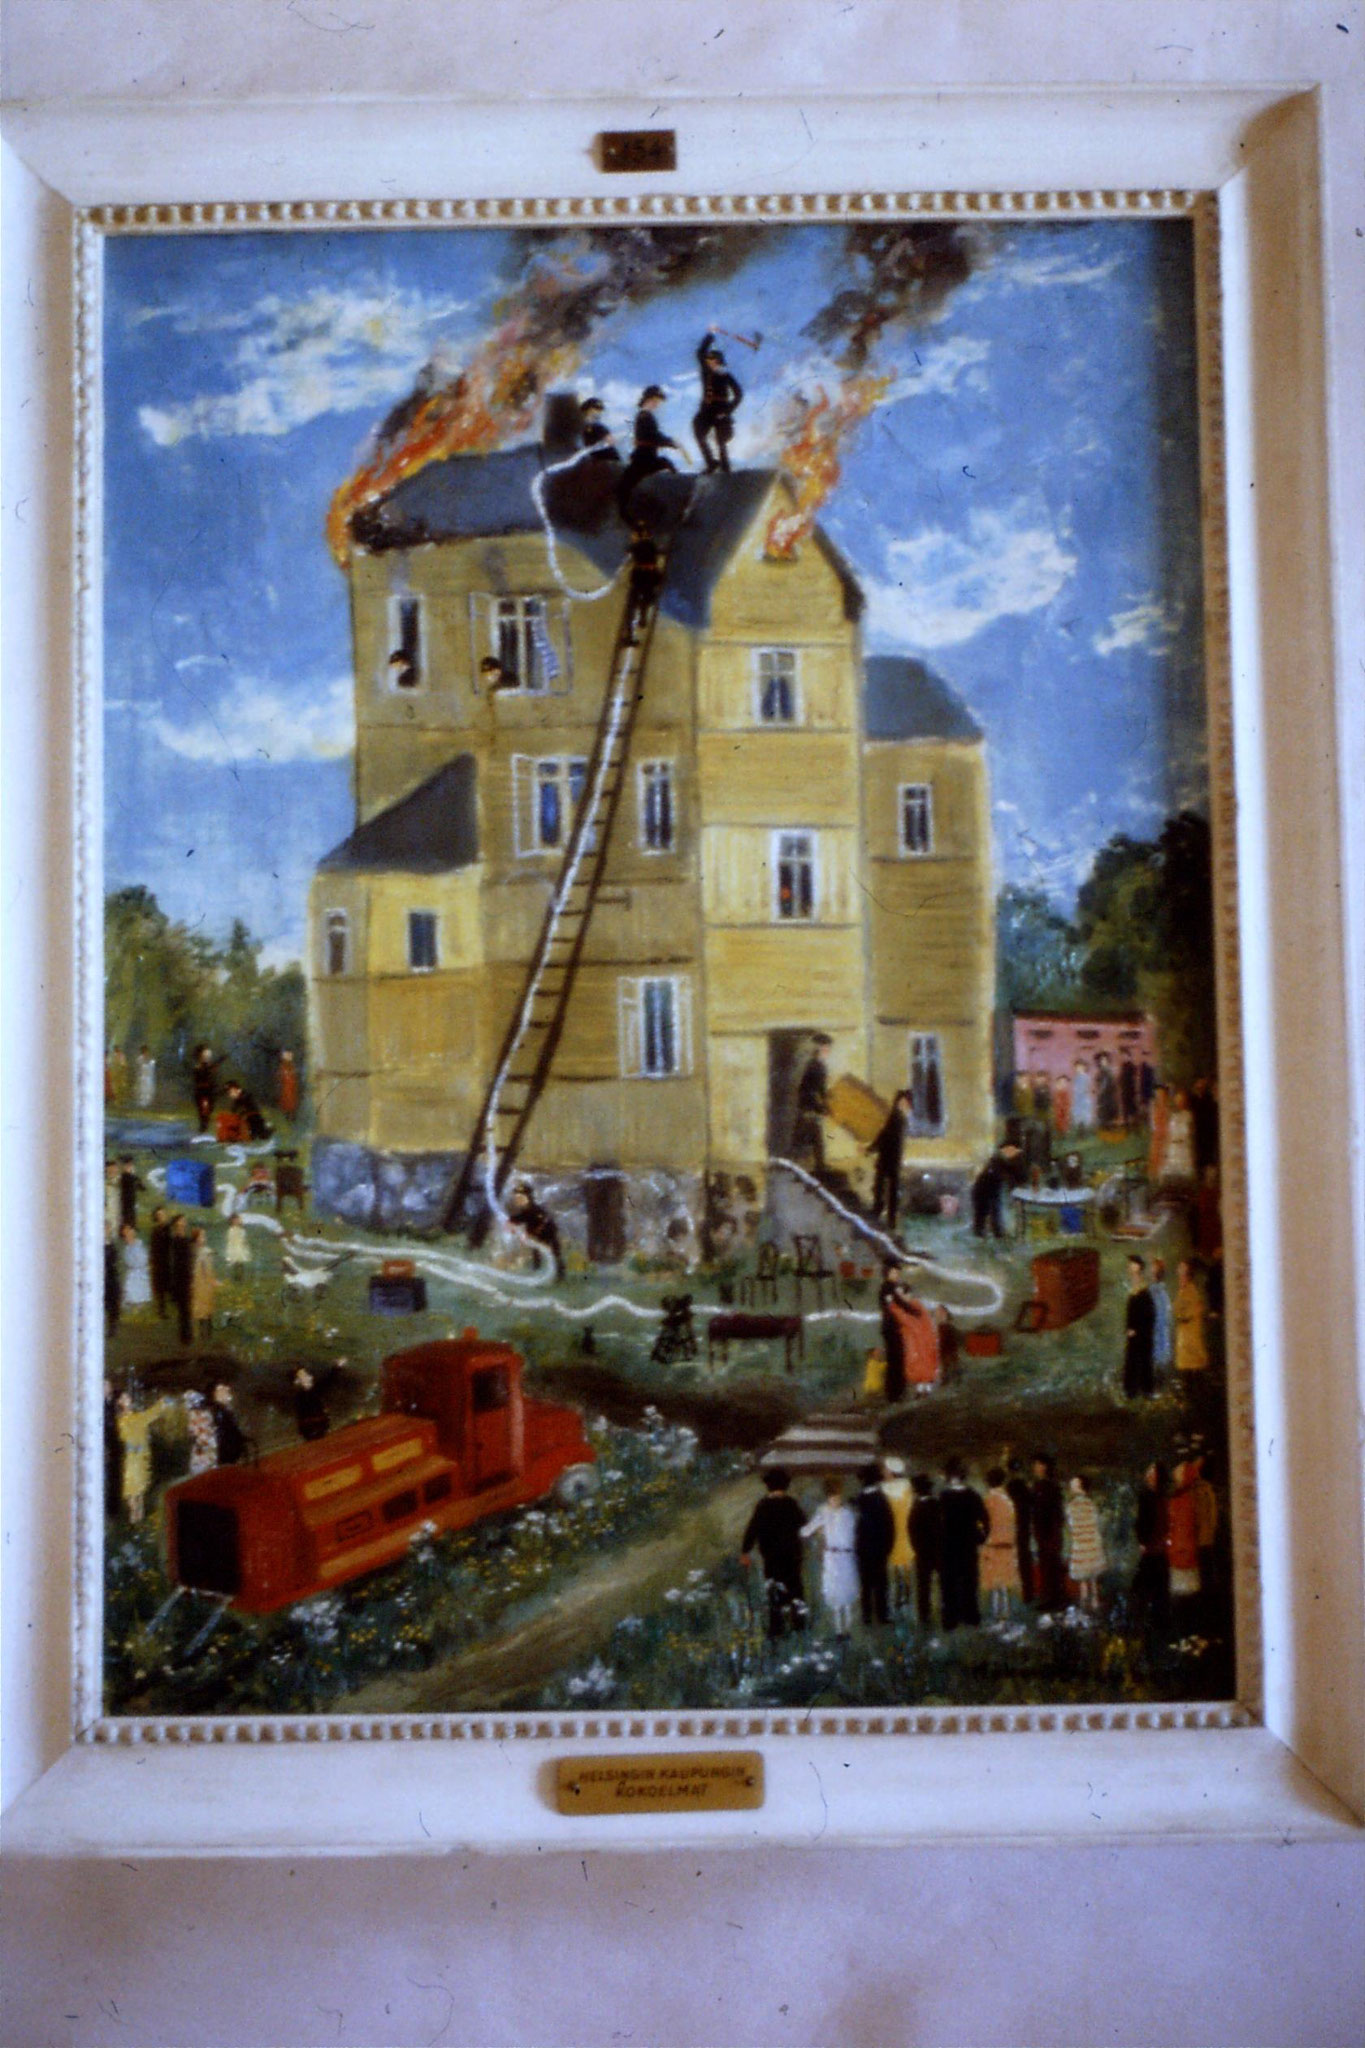 8/10/1988: 6: Turku Castle, picture of fire brigade